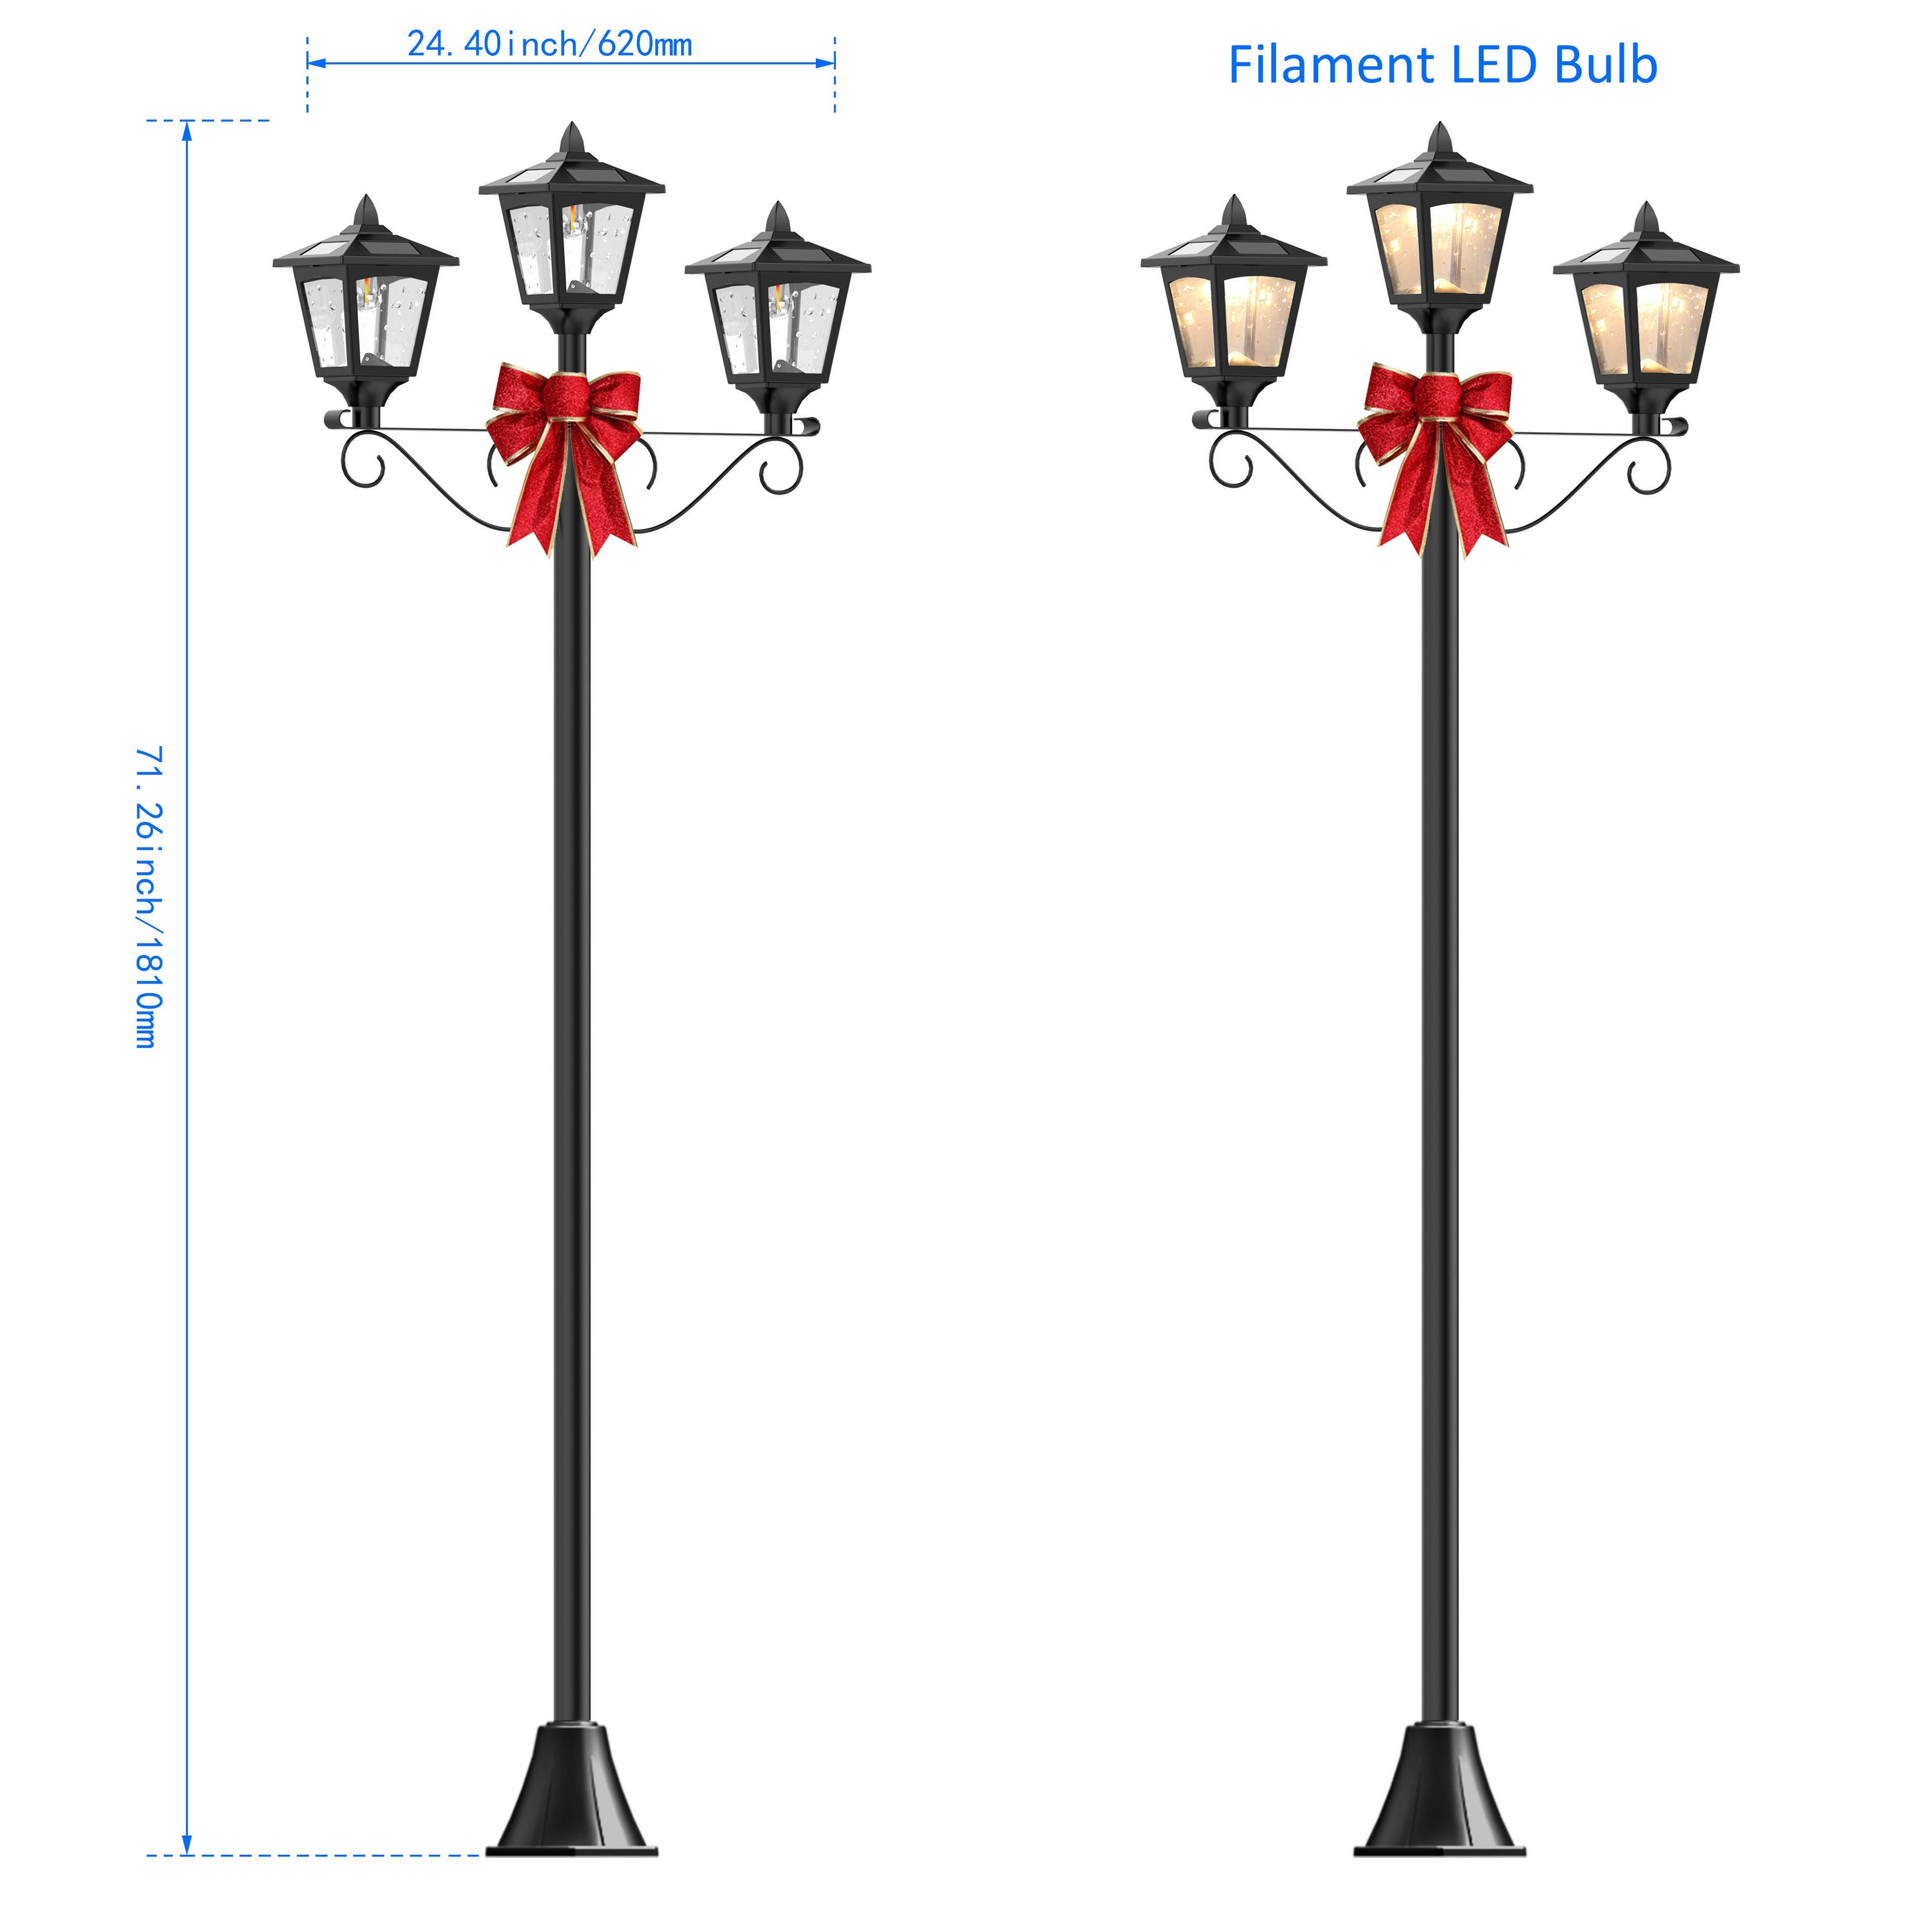 Shop kanstar 72 triple head street vintage outdoor garden post shop kanstar 72 triple head street vintage outdoor garden post solar lamp post light lawn adjustable free shipping today overstock 19741411 aloadofball Image collections